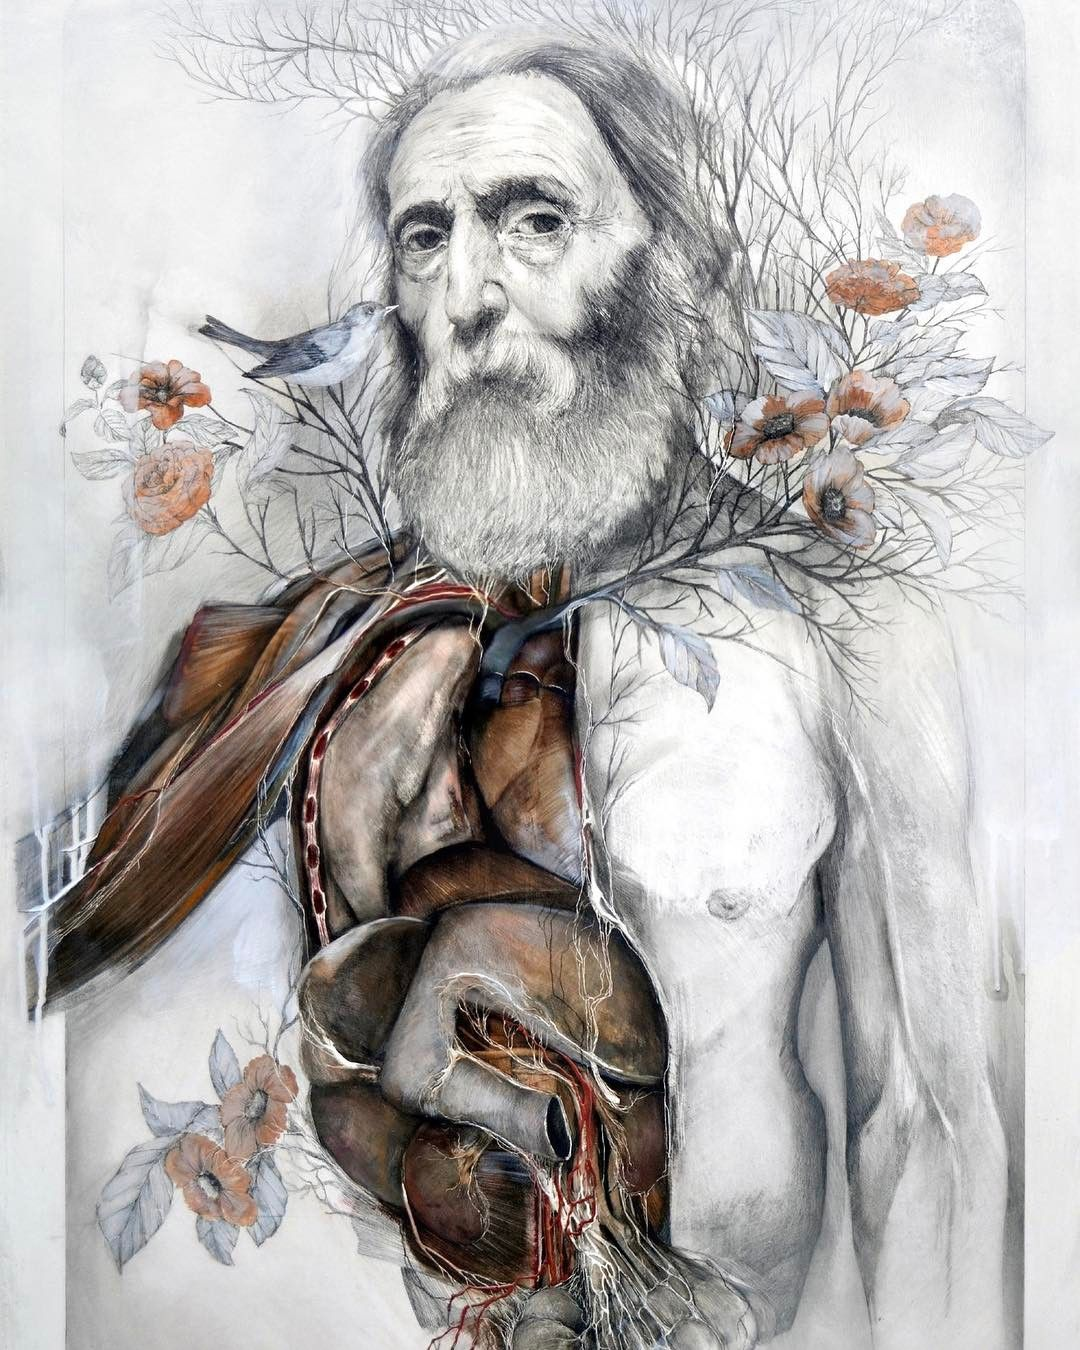 Nunzio paci nunziopaci an italian artist combines the beauty of pencil drawing and oil painting to create surreal and weird yet certainly fascinating